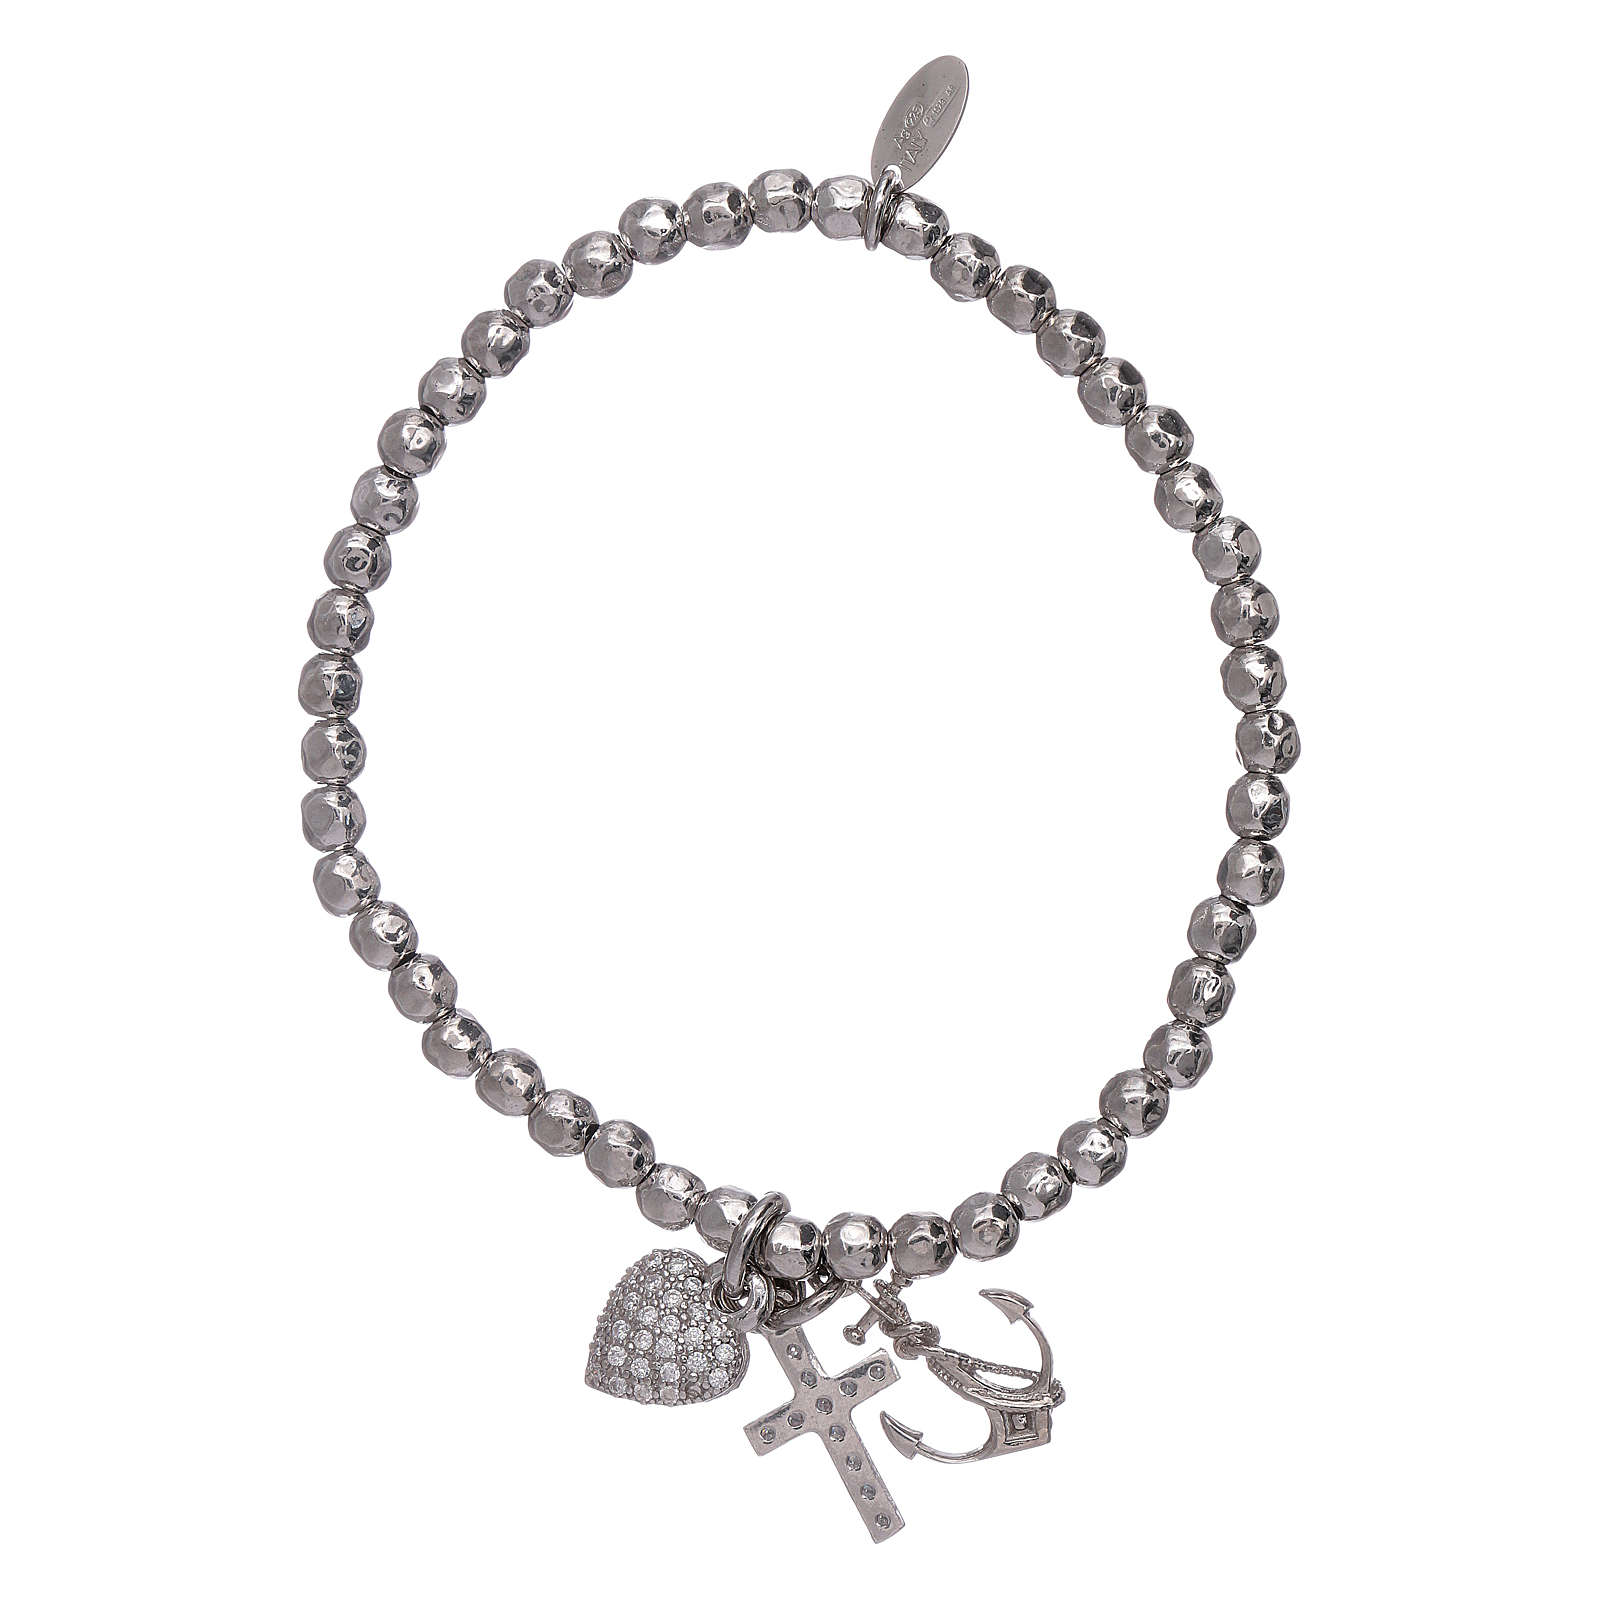 AMEN 925 sterling silver bracelet with 3 mm beads Faith, Hope and Charity 4